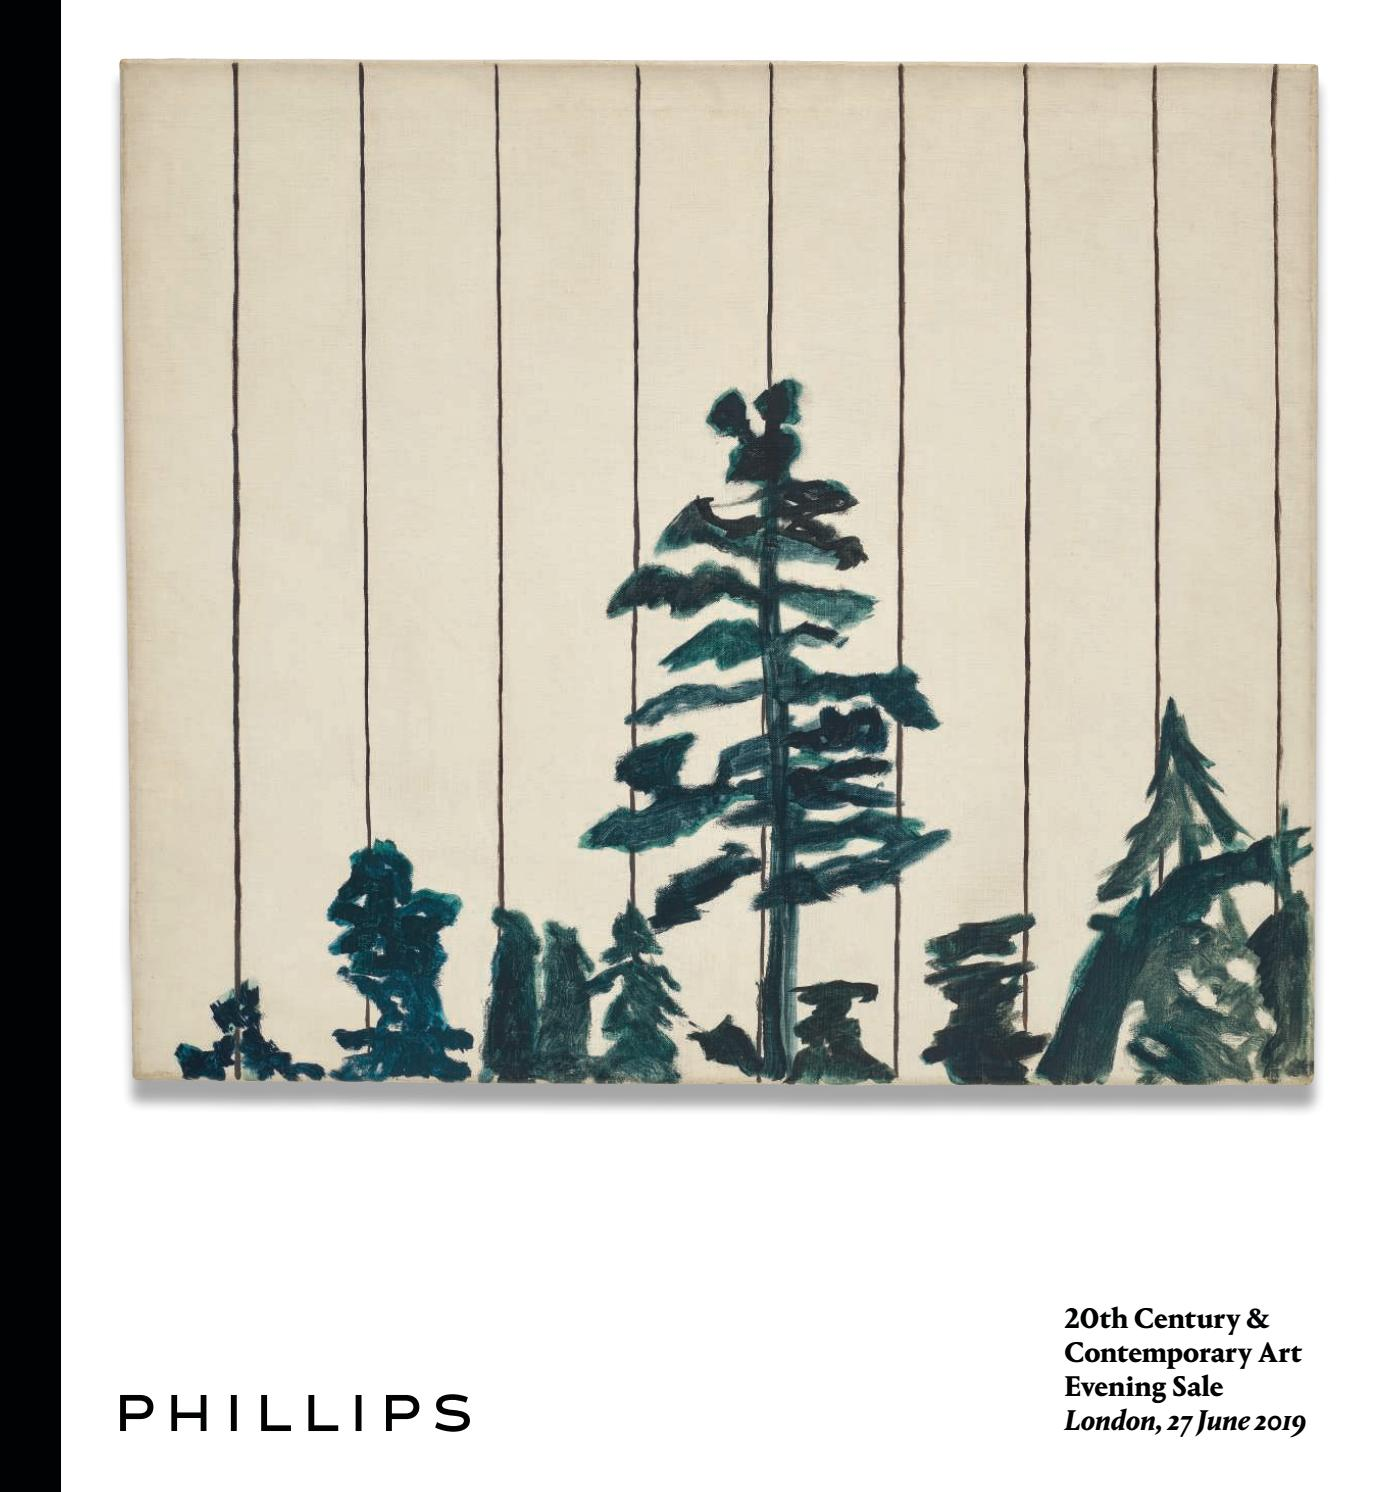 20TH CENTURY & CONTEMPORARY ART EVENING SALE [Catalogue] by